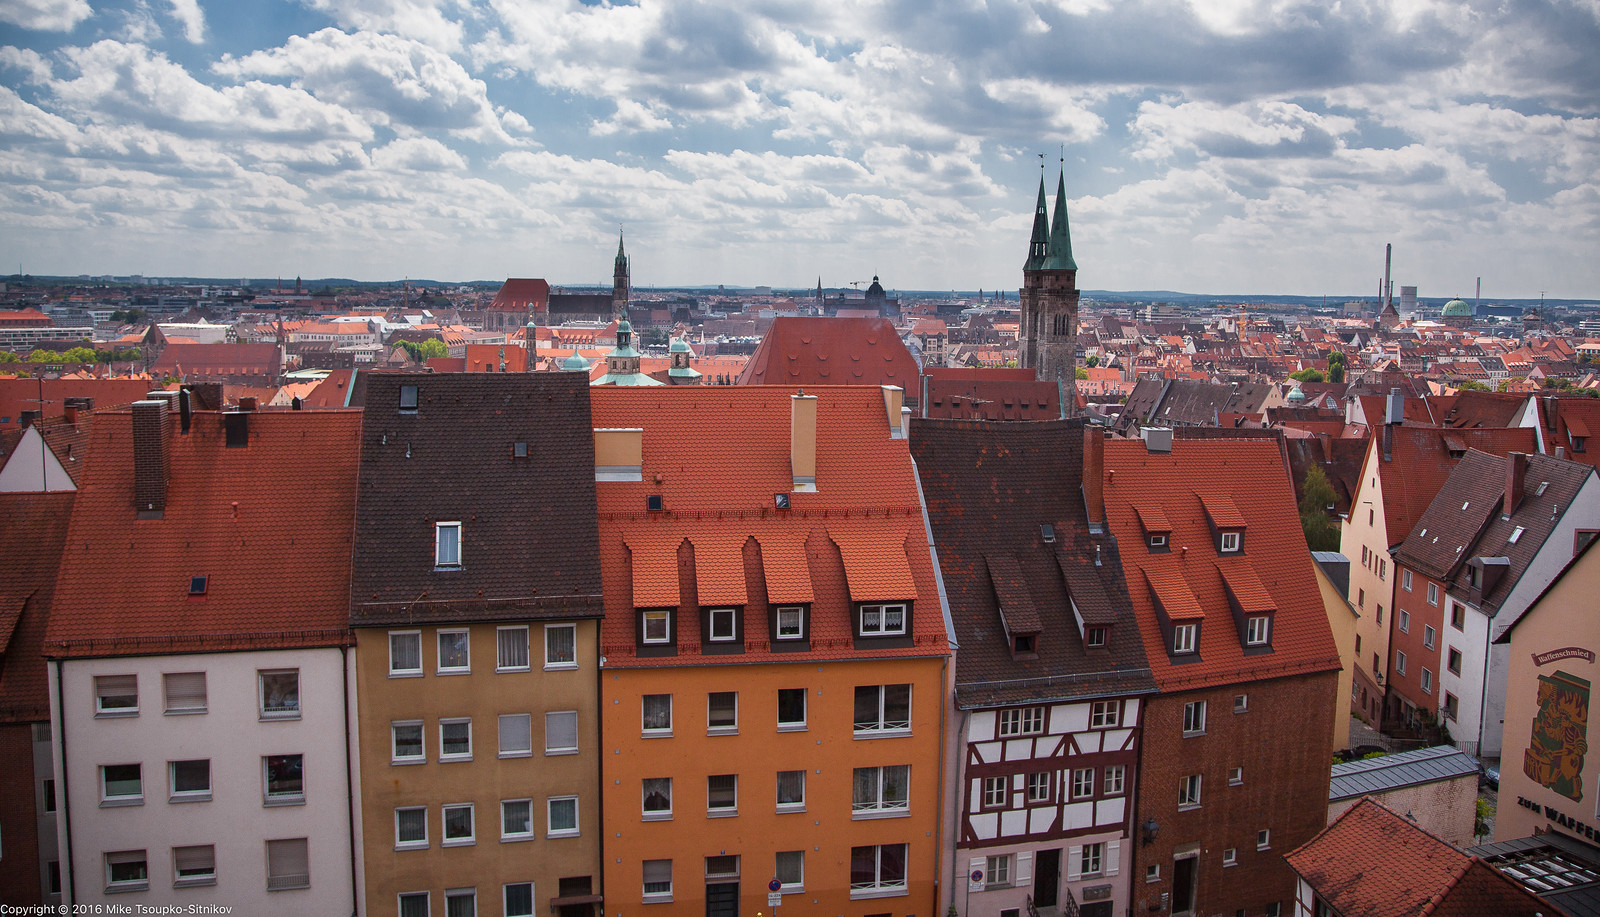 Nuremberg: a view from the Castle